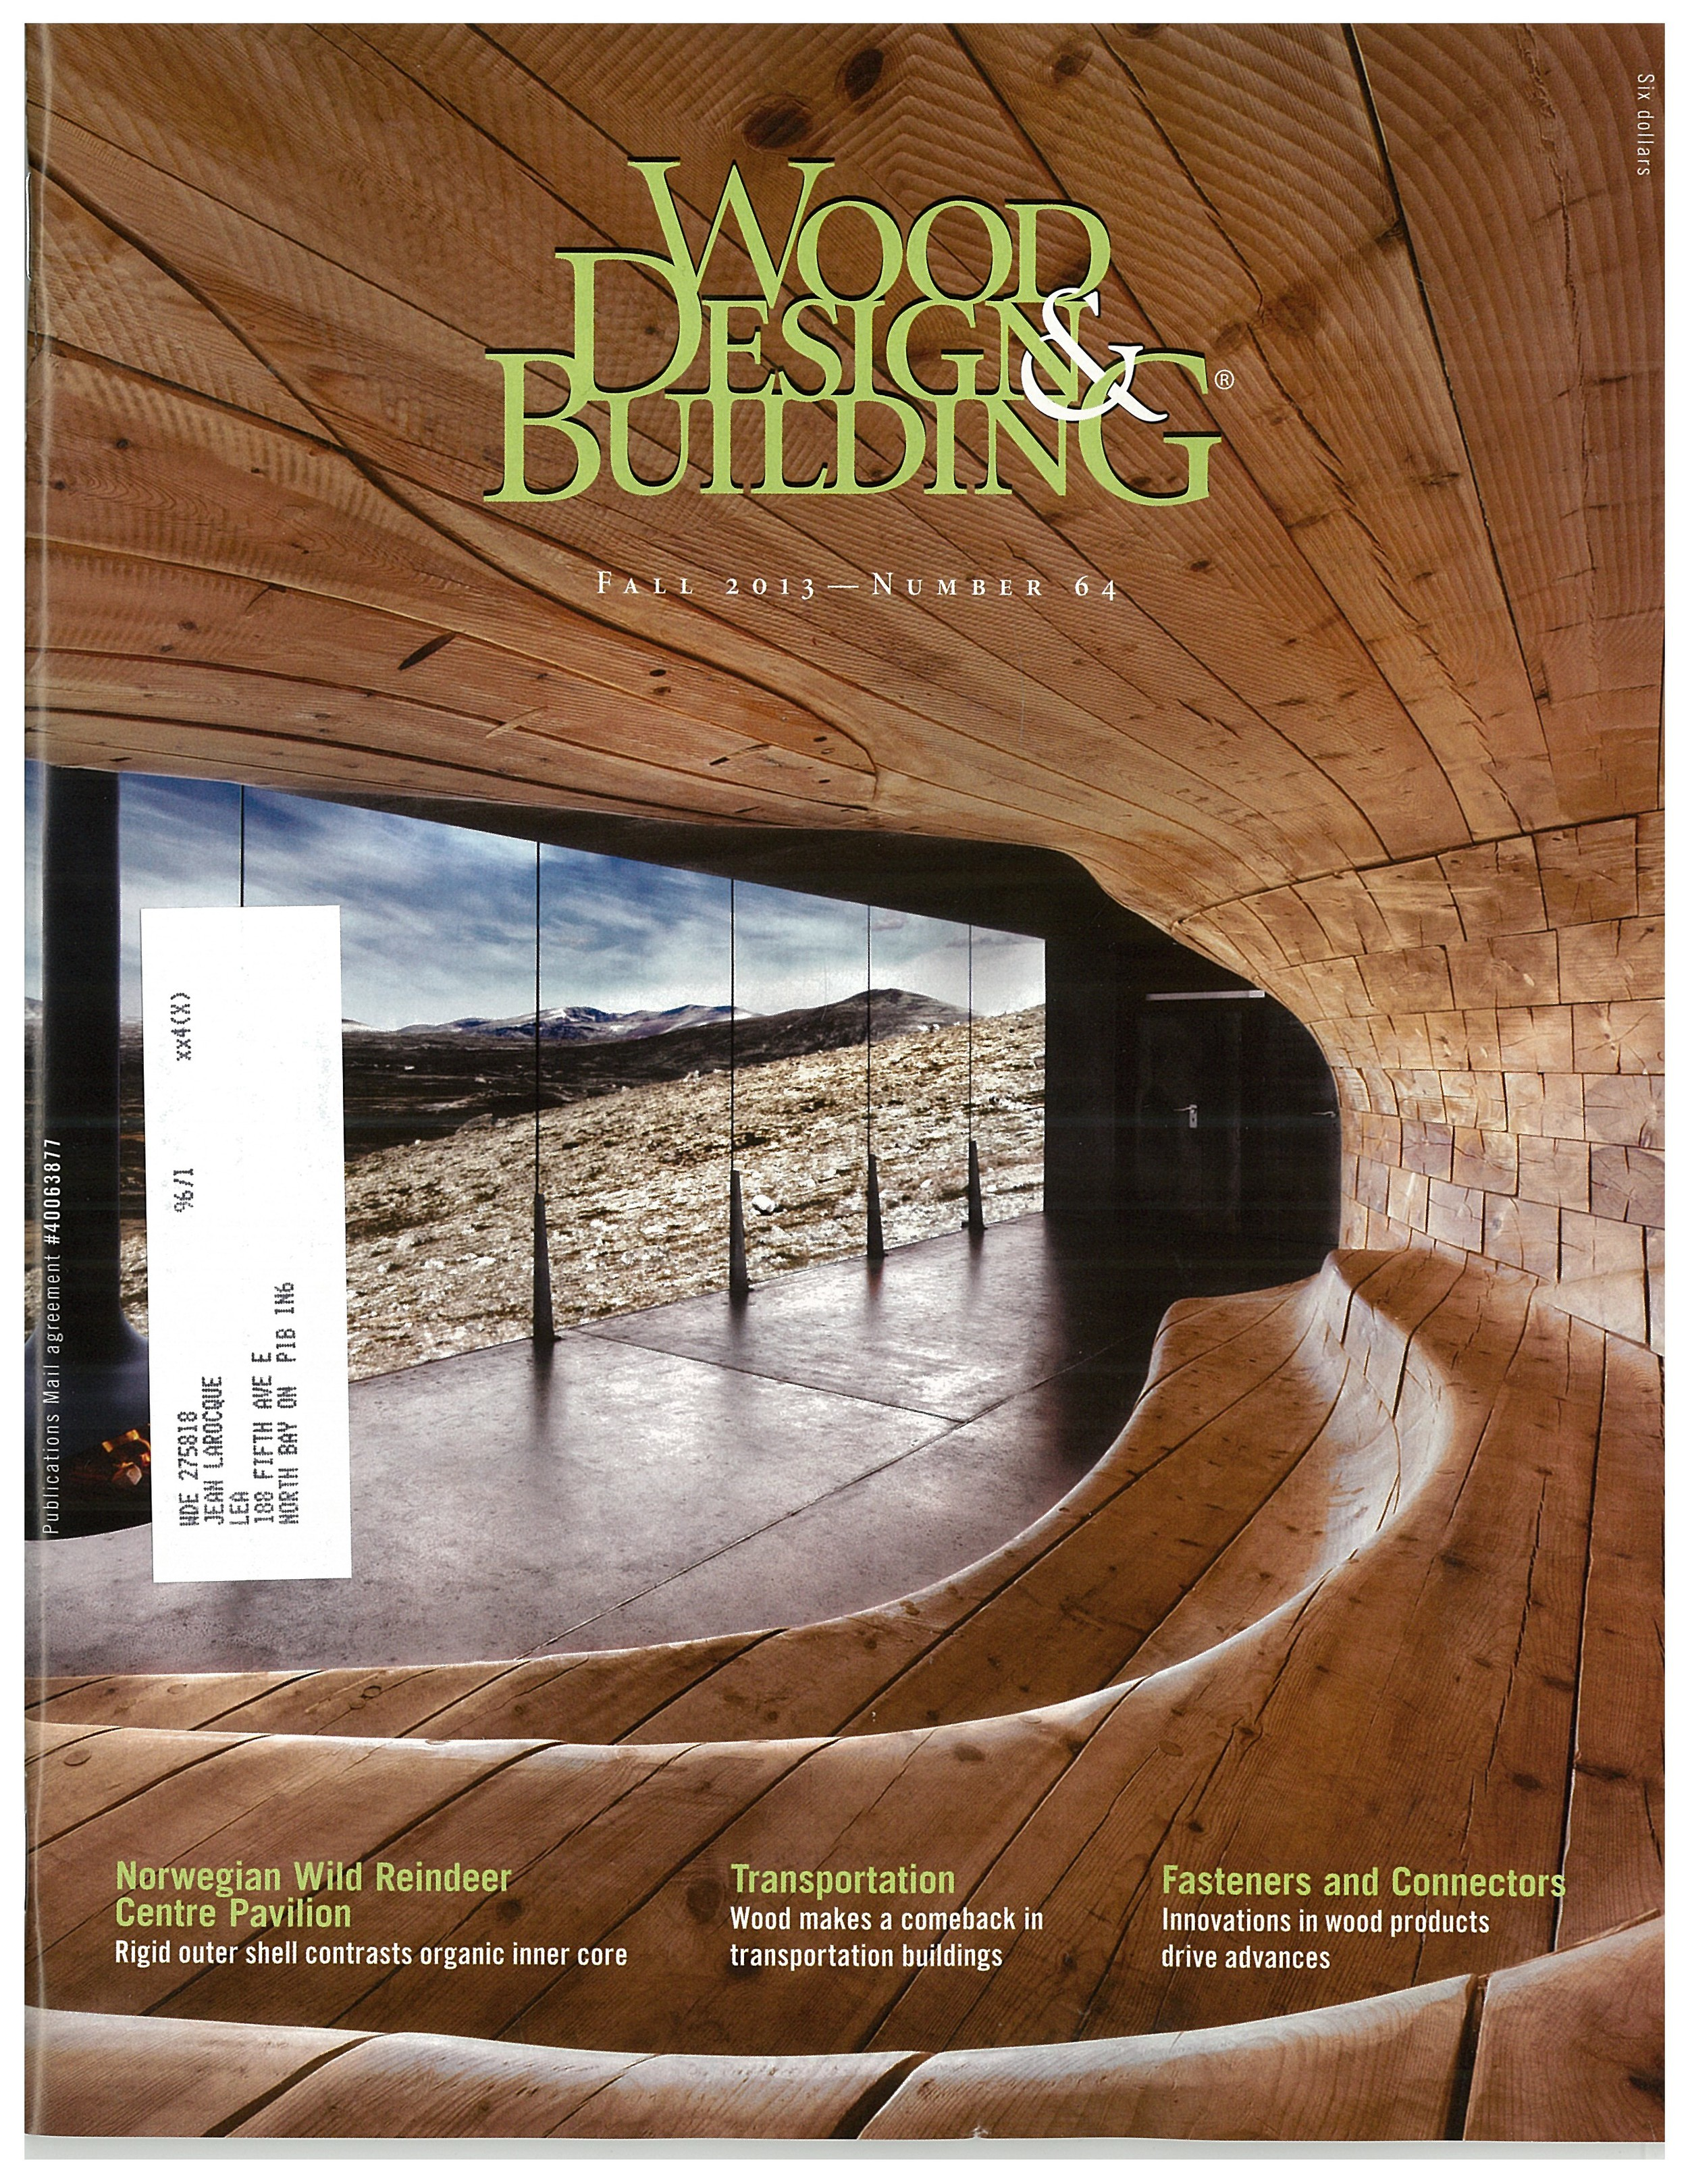 2013 -10 St. Victor Article Wood Design and Building_Page_1.jpg